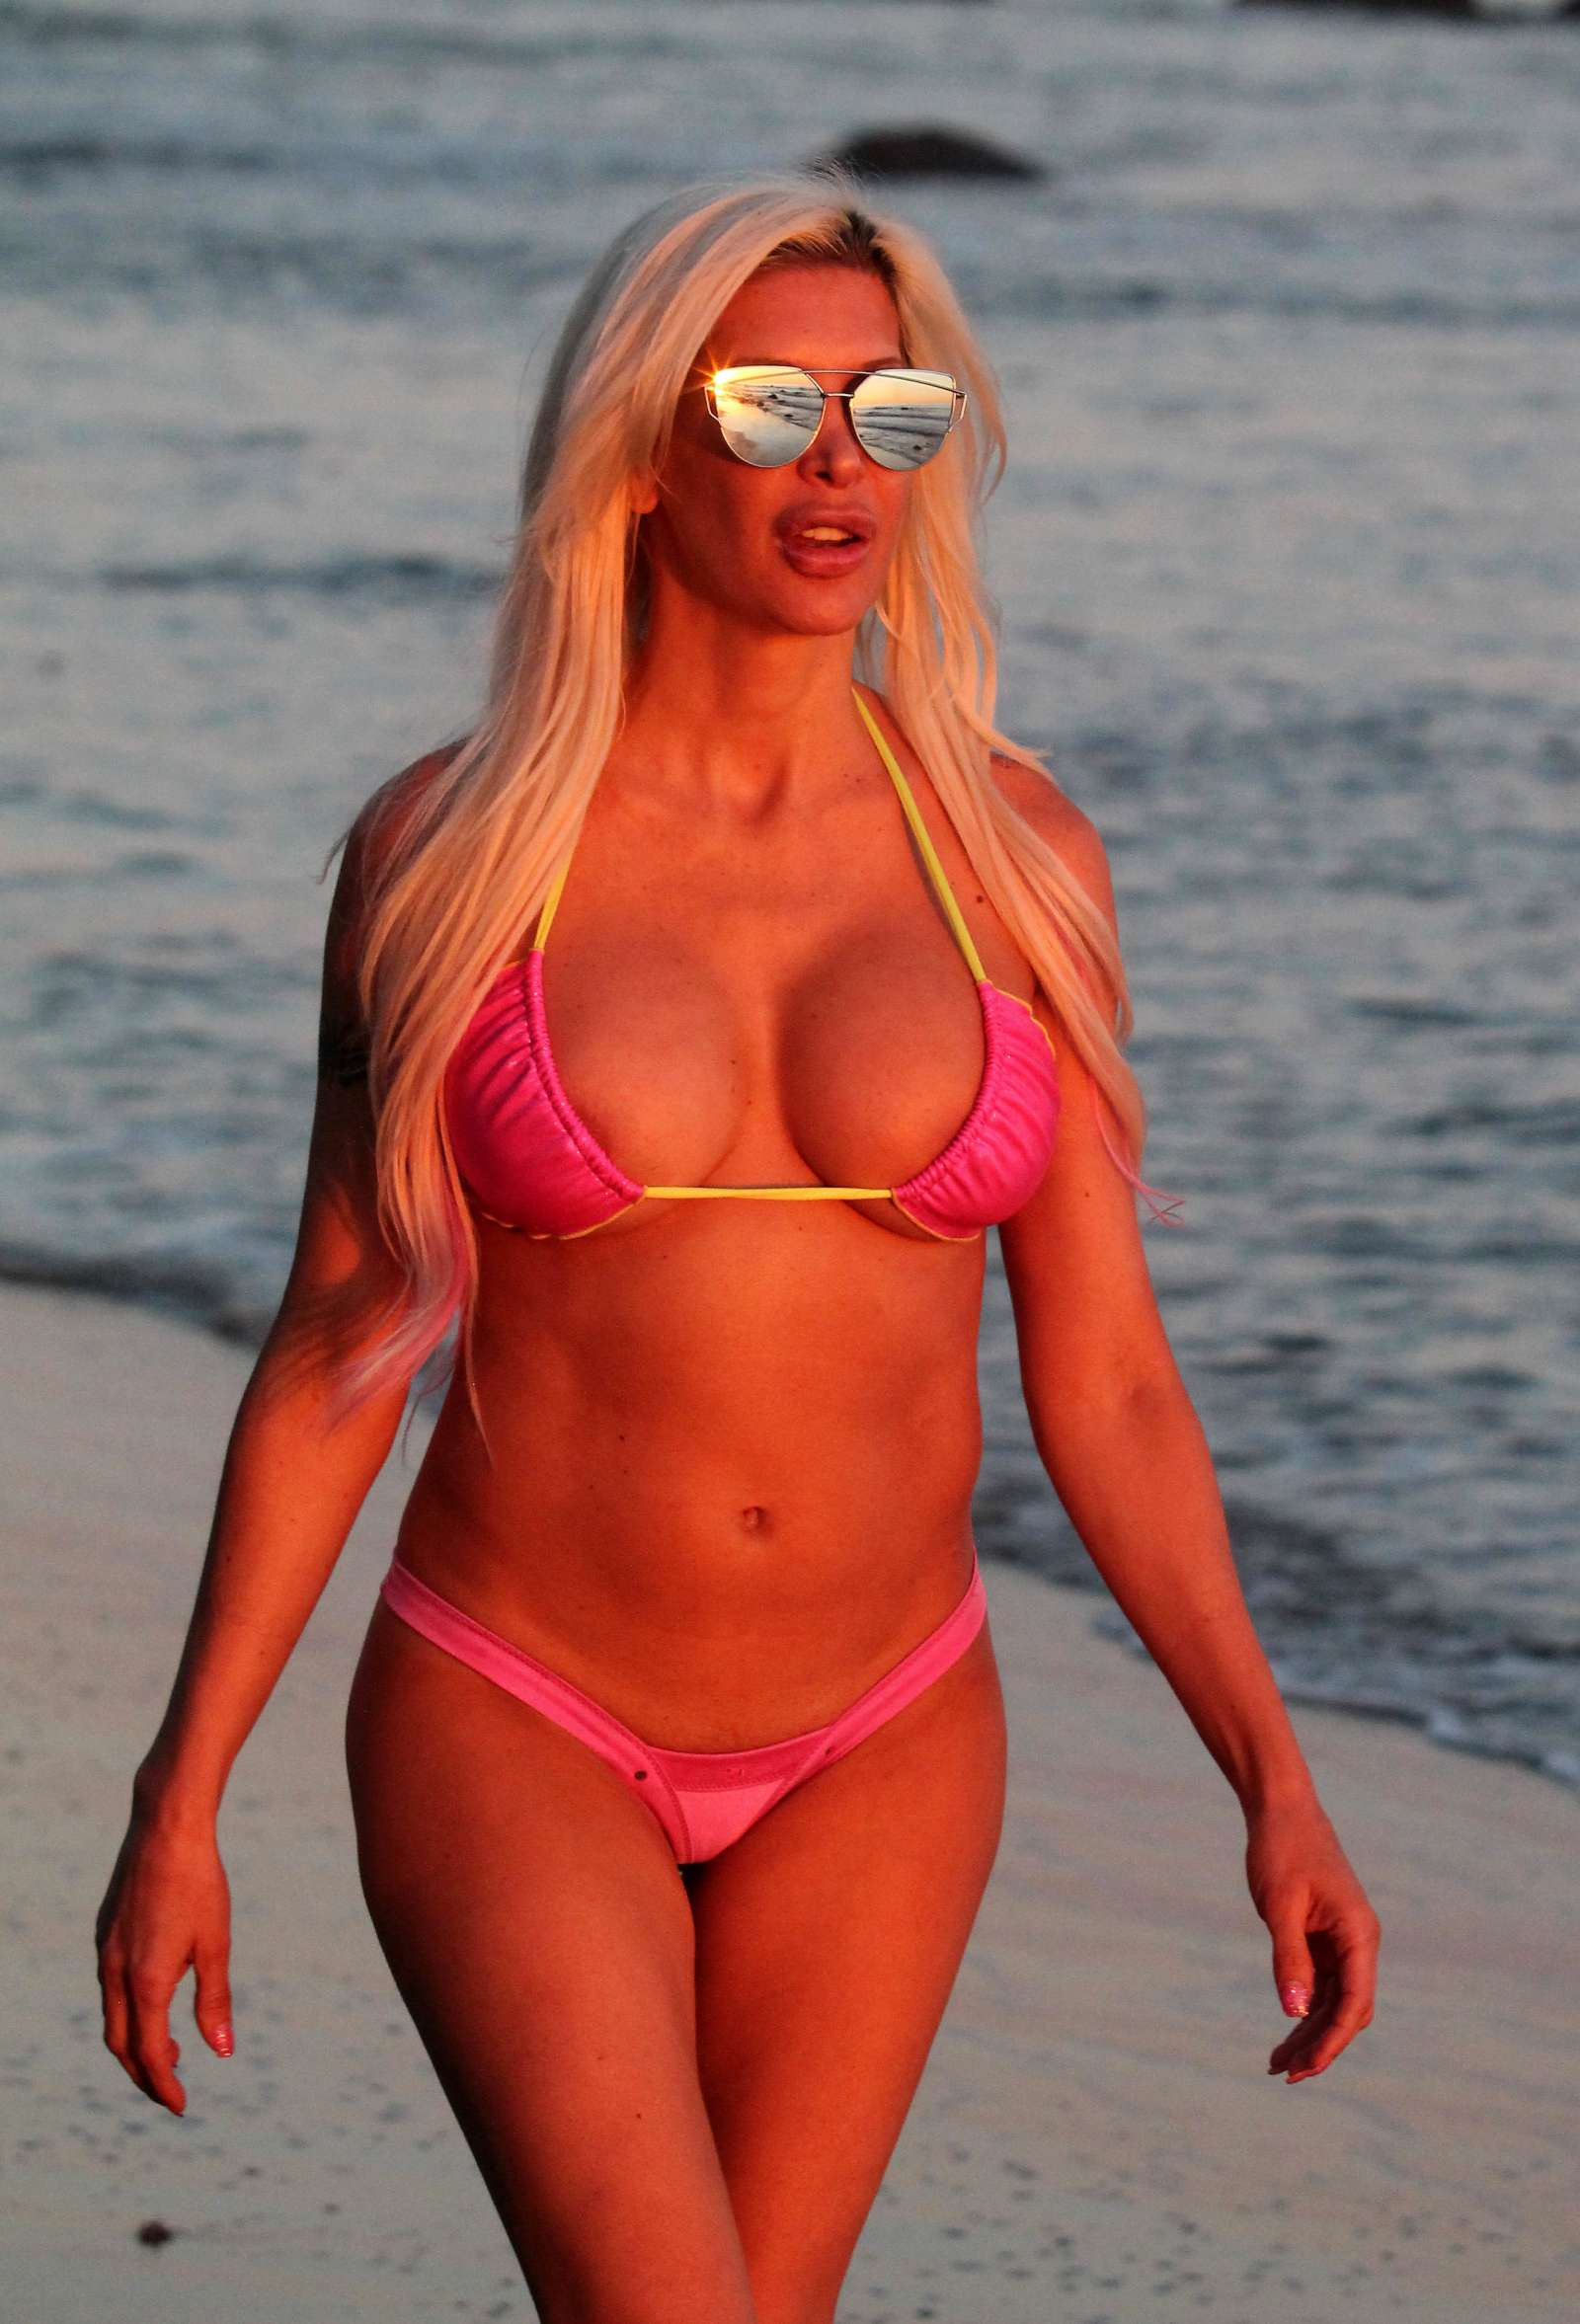 Angelique Frenchy Morgan in Pink Bikini on the beach in Malibu